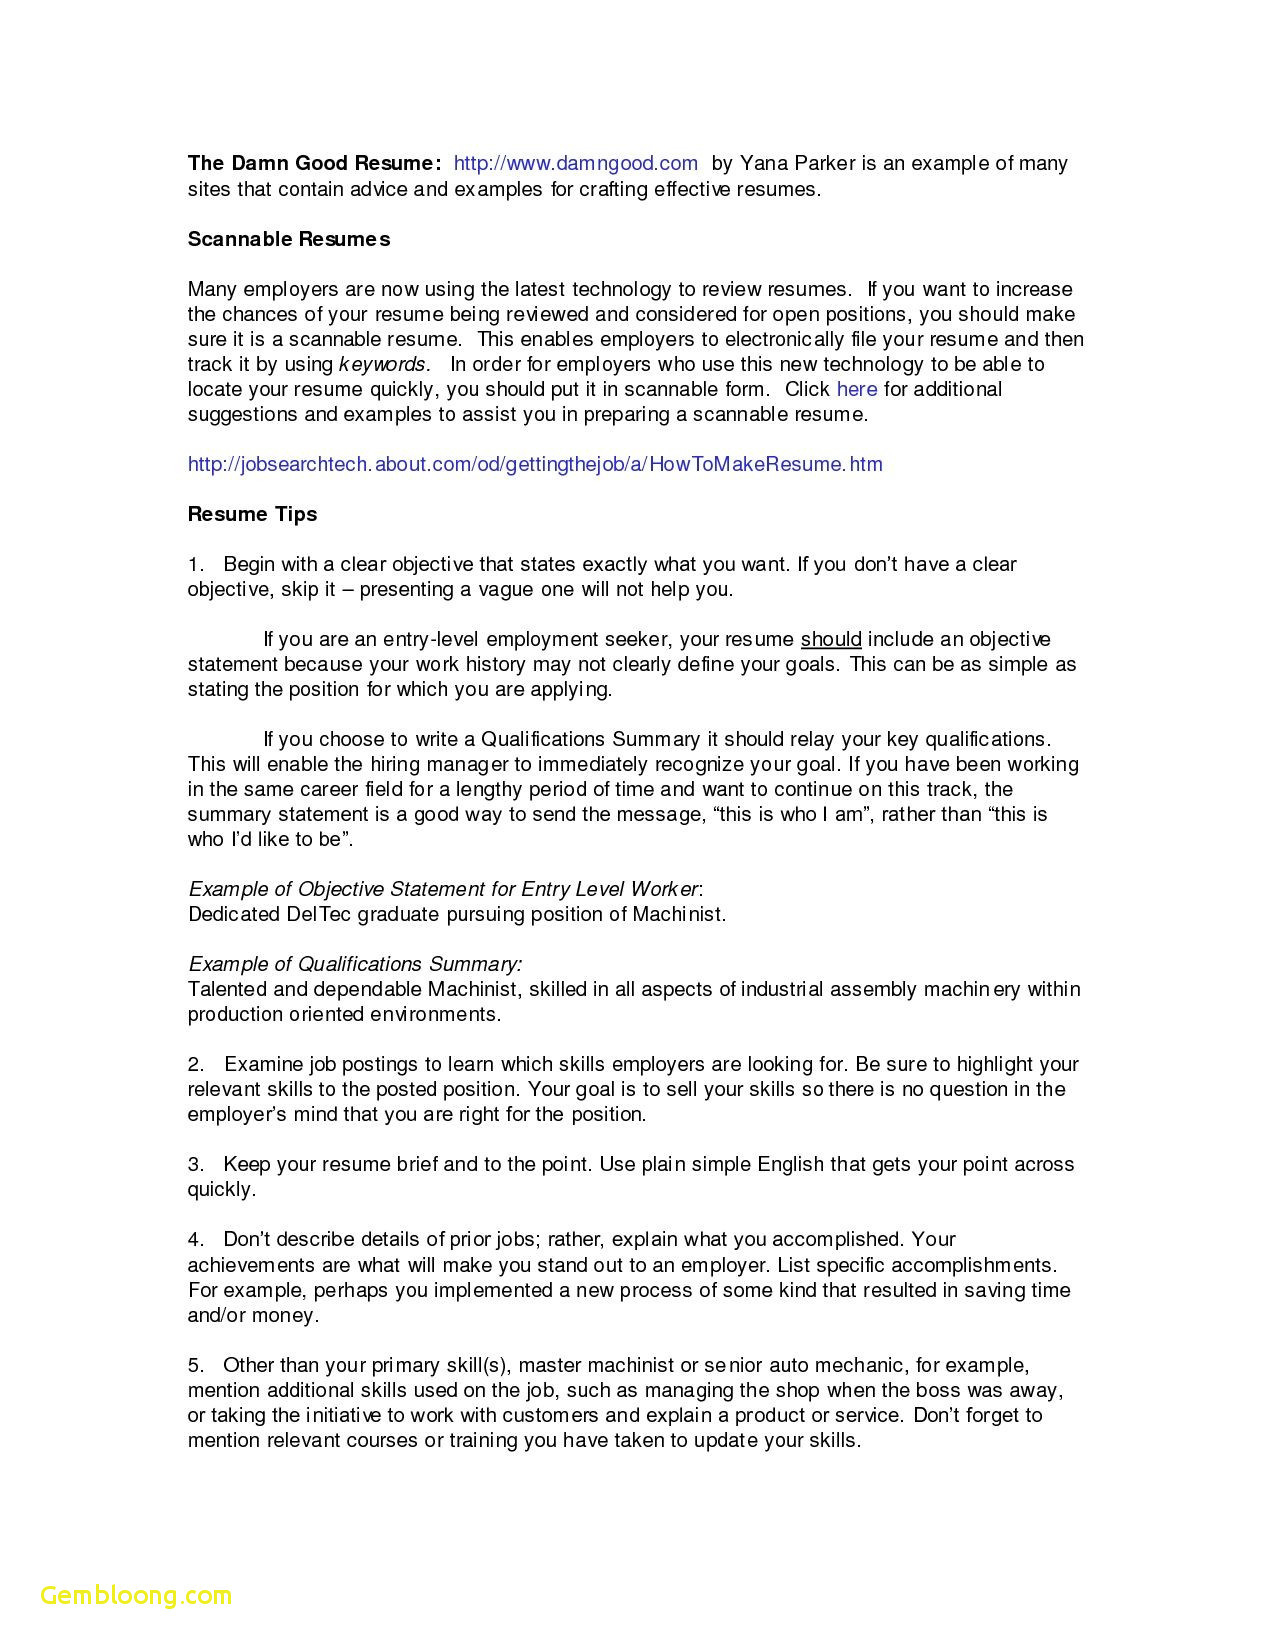 Executive assistant Resume Bullet Points - Resume Objective Executive assistant Free Downloads Executive